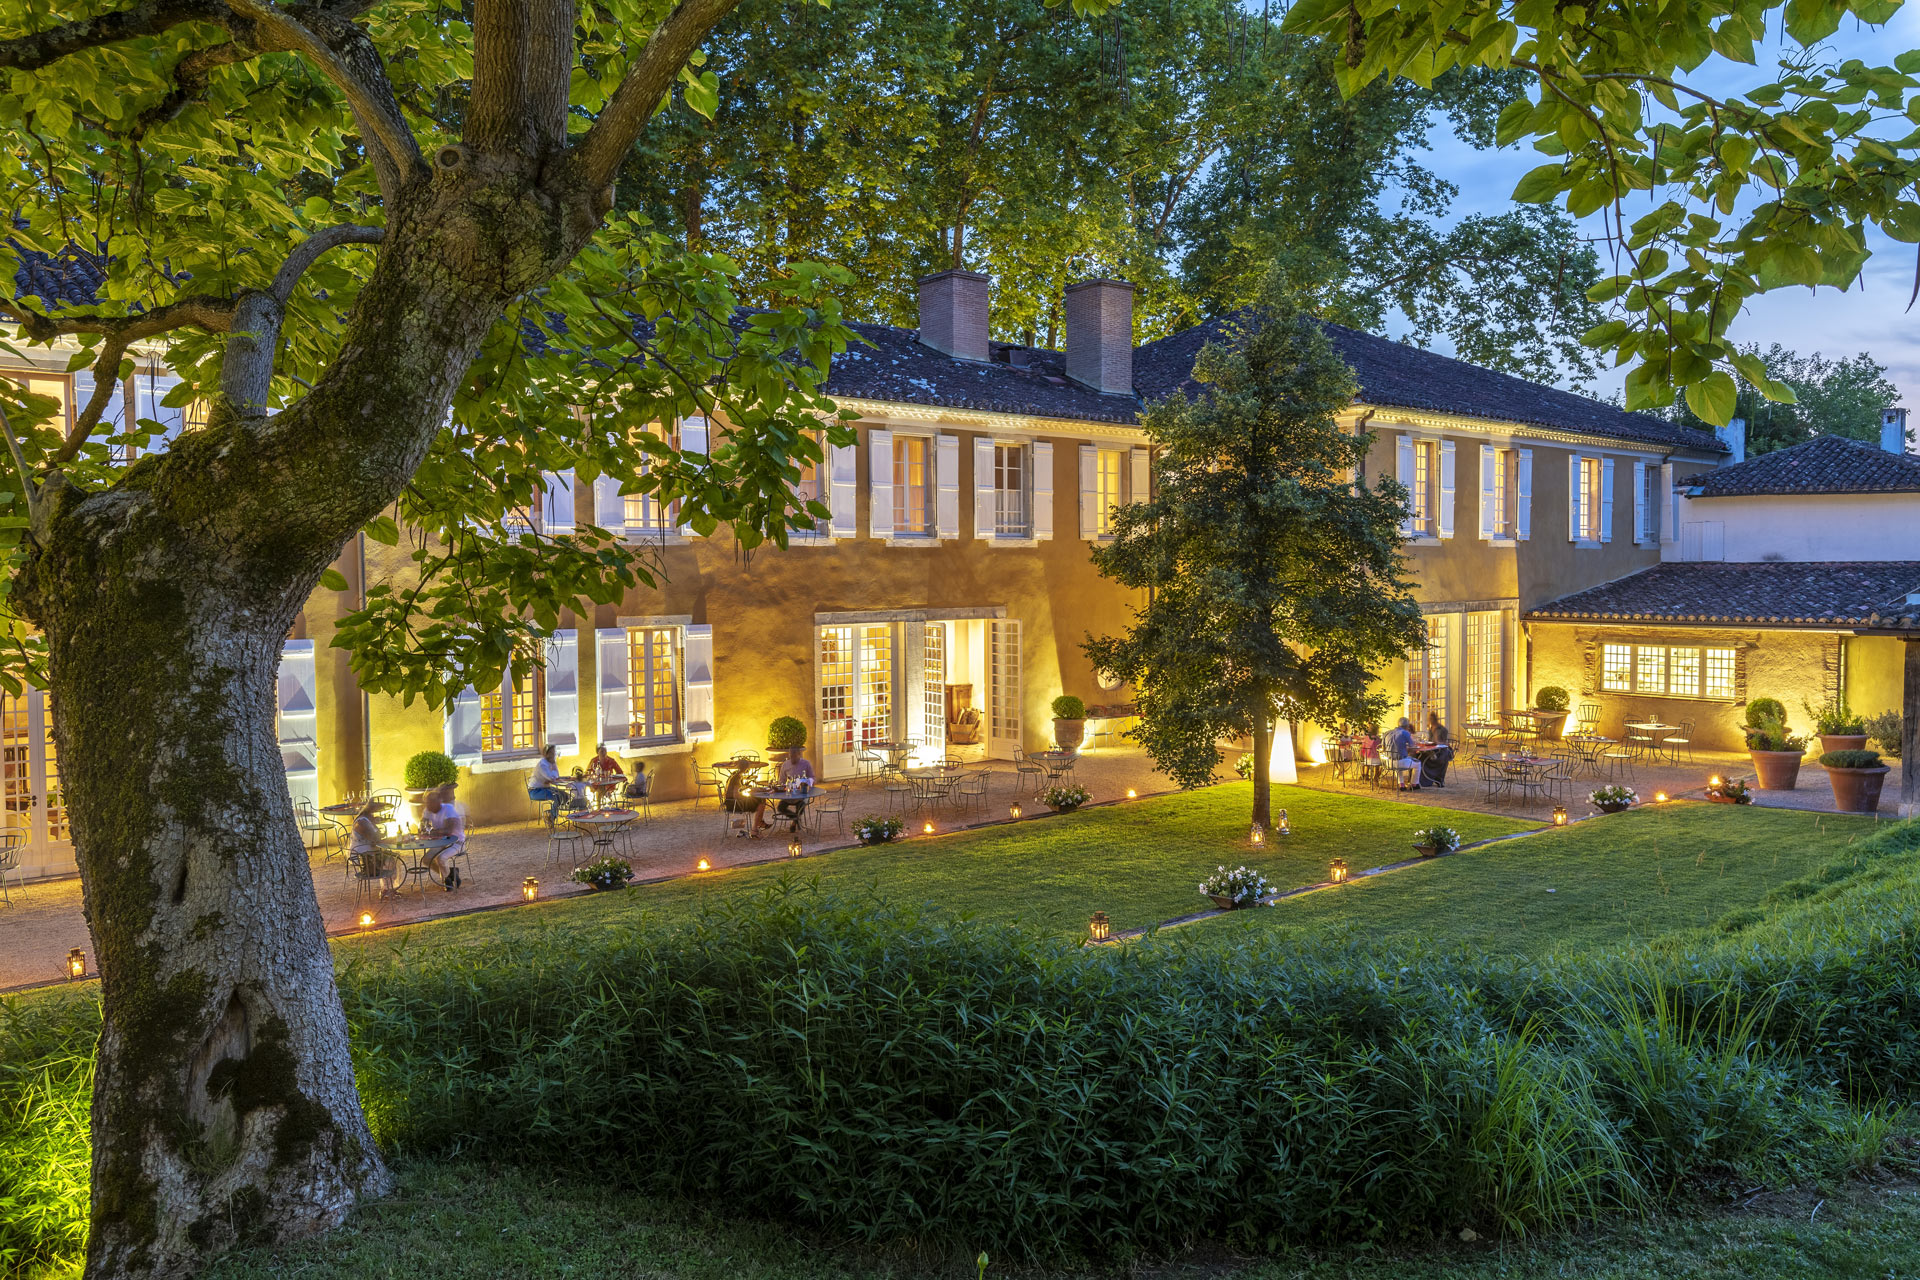 station thermale barbotan les thermes hotel la bastide